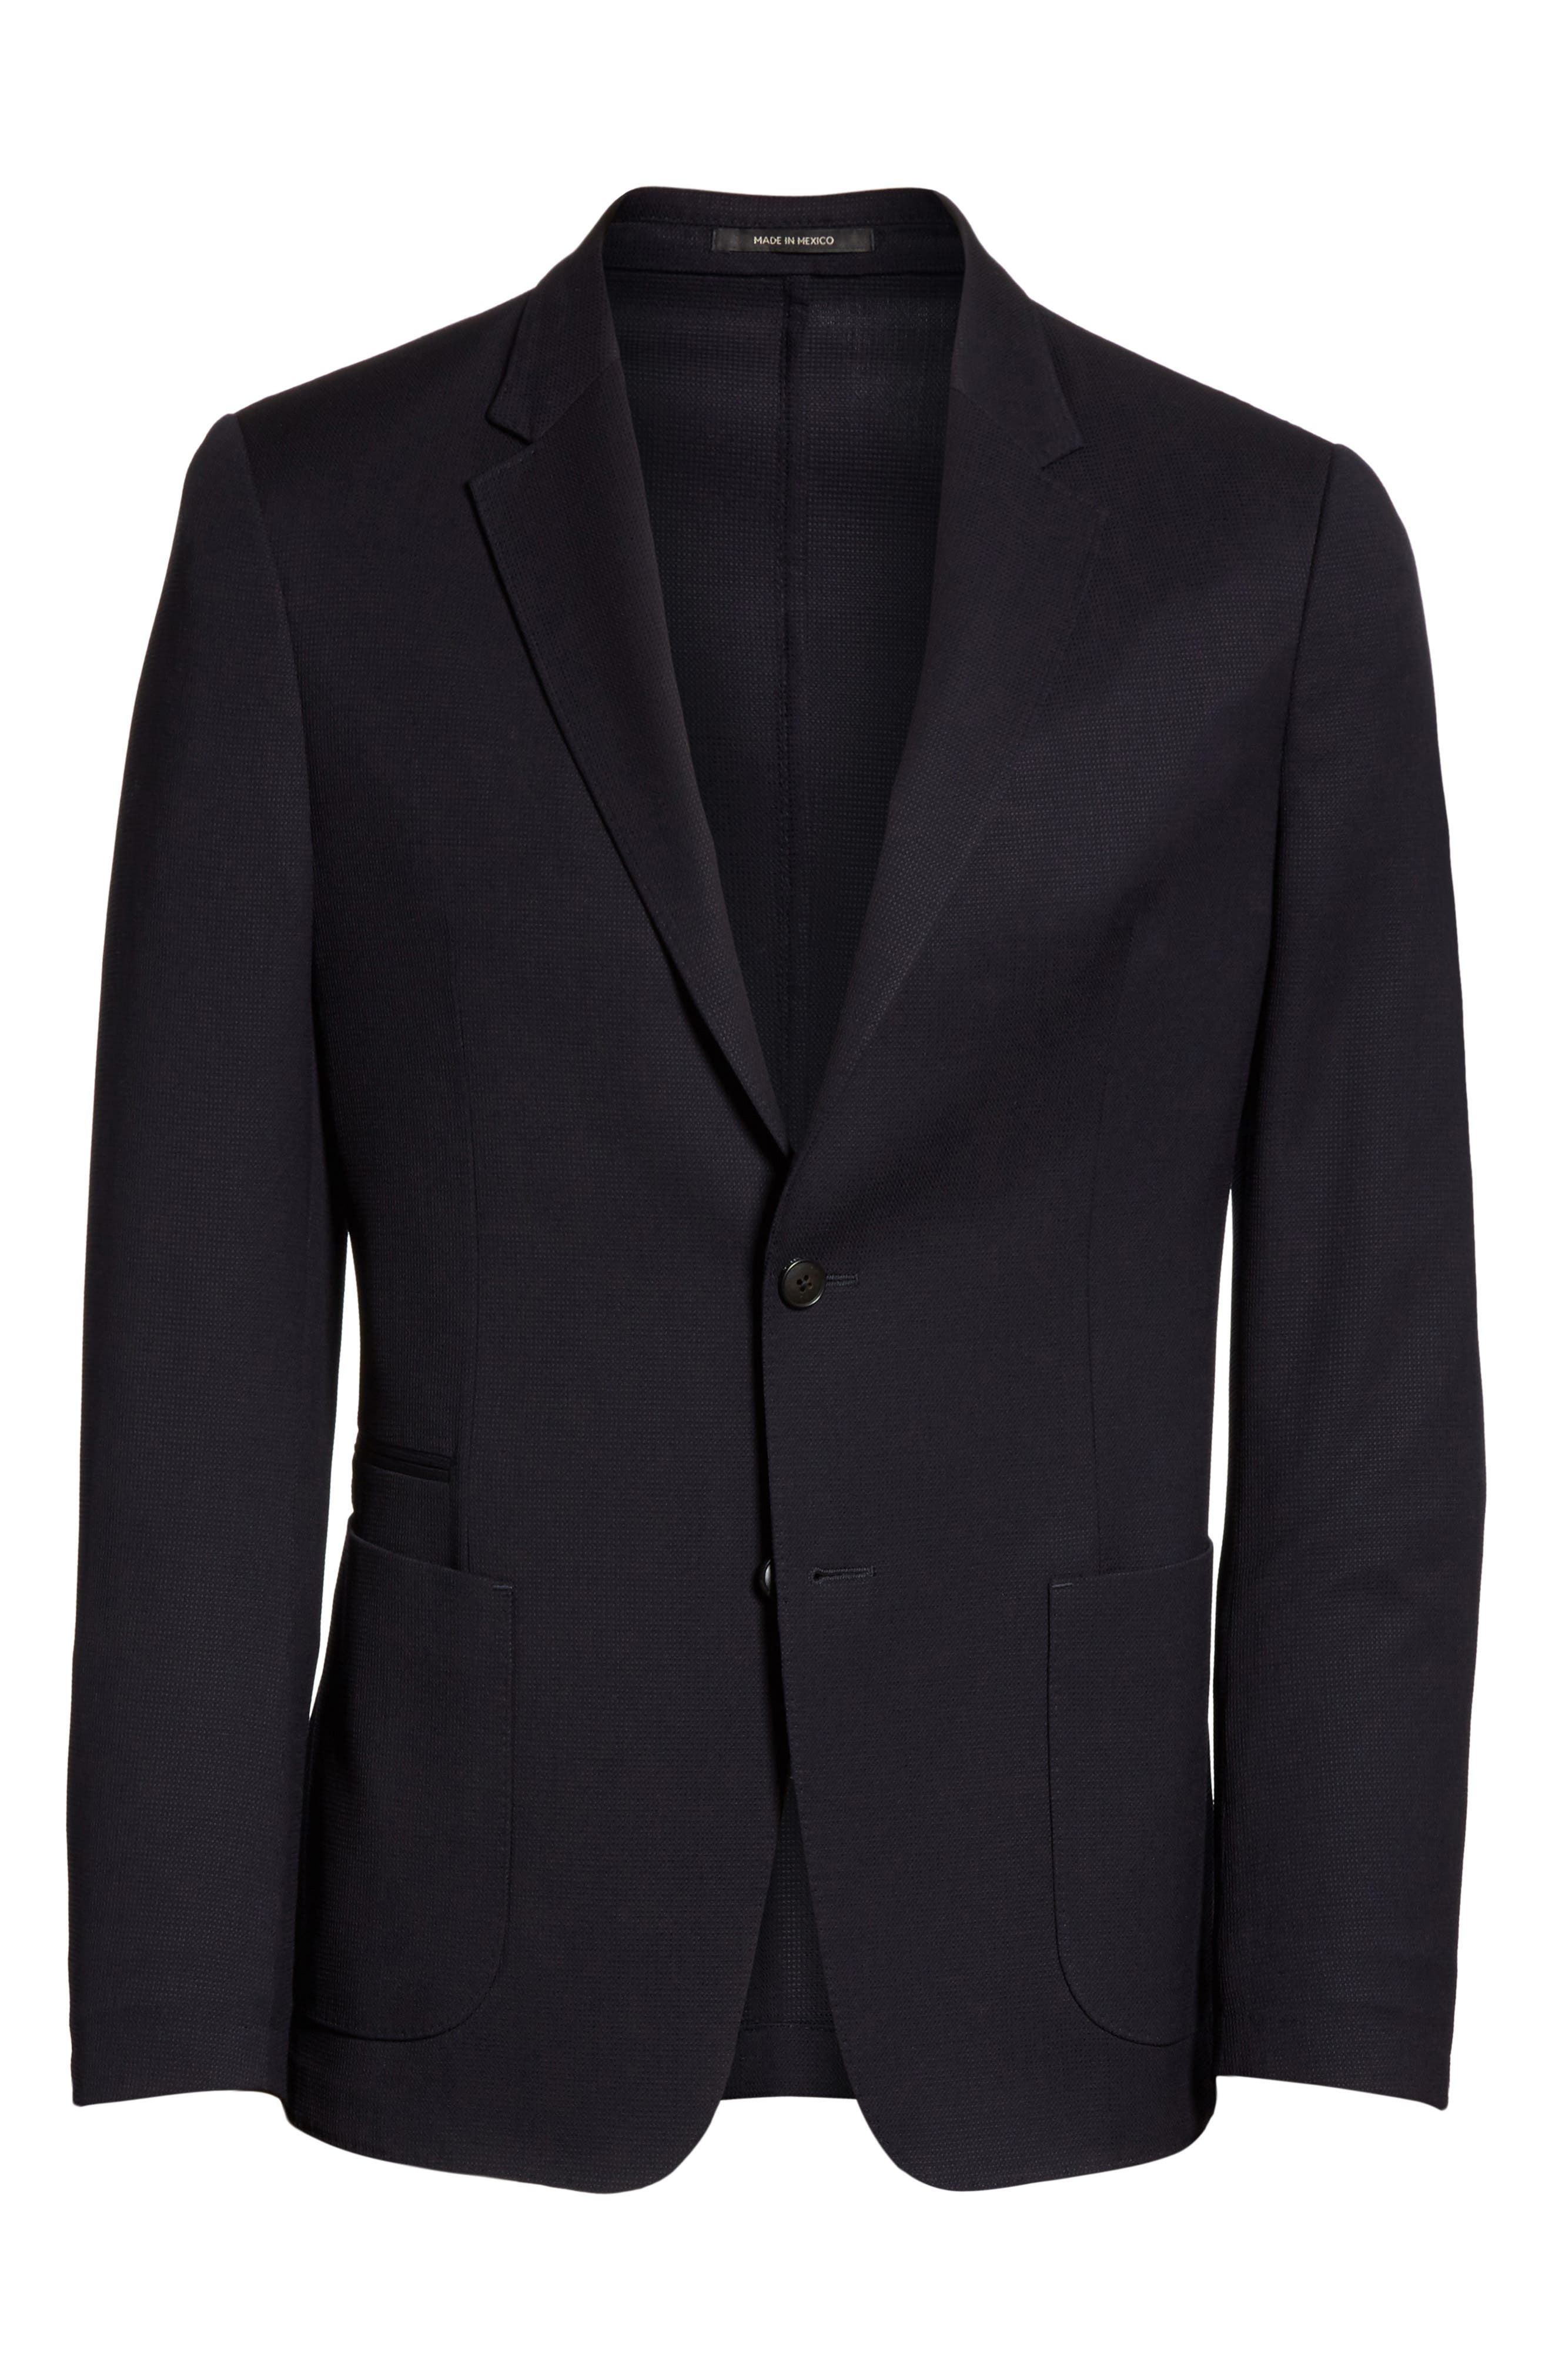 TECHMERINO<sup>™</sup> Wash & Go Classic Fit Wool Blazer,                             Alternate thumbnail 6, color,                             Navy Solid